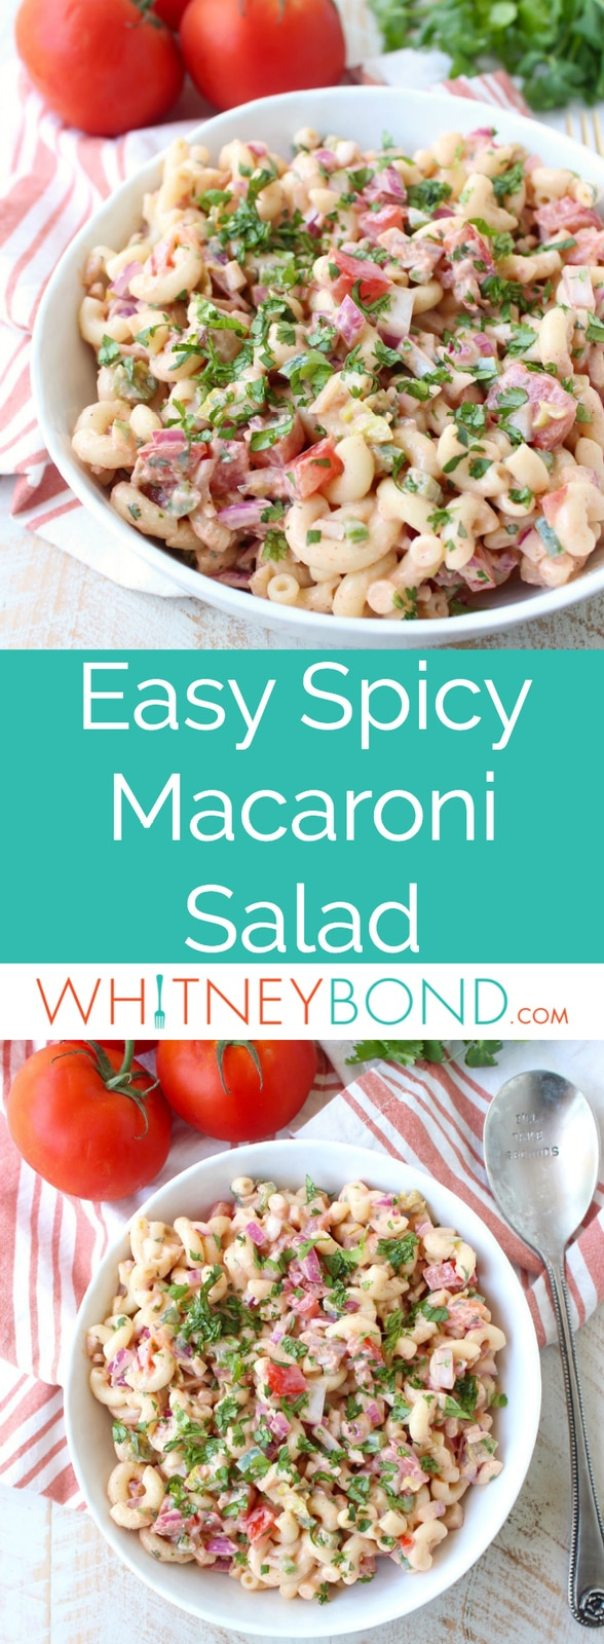 This spicy macaroni salad recipe gives a flavorful kick to a traditional pasta salad with the addition of jalapenos, cayenne pepper & buffalo sauce!